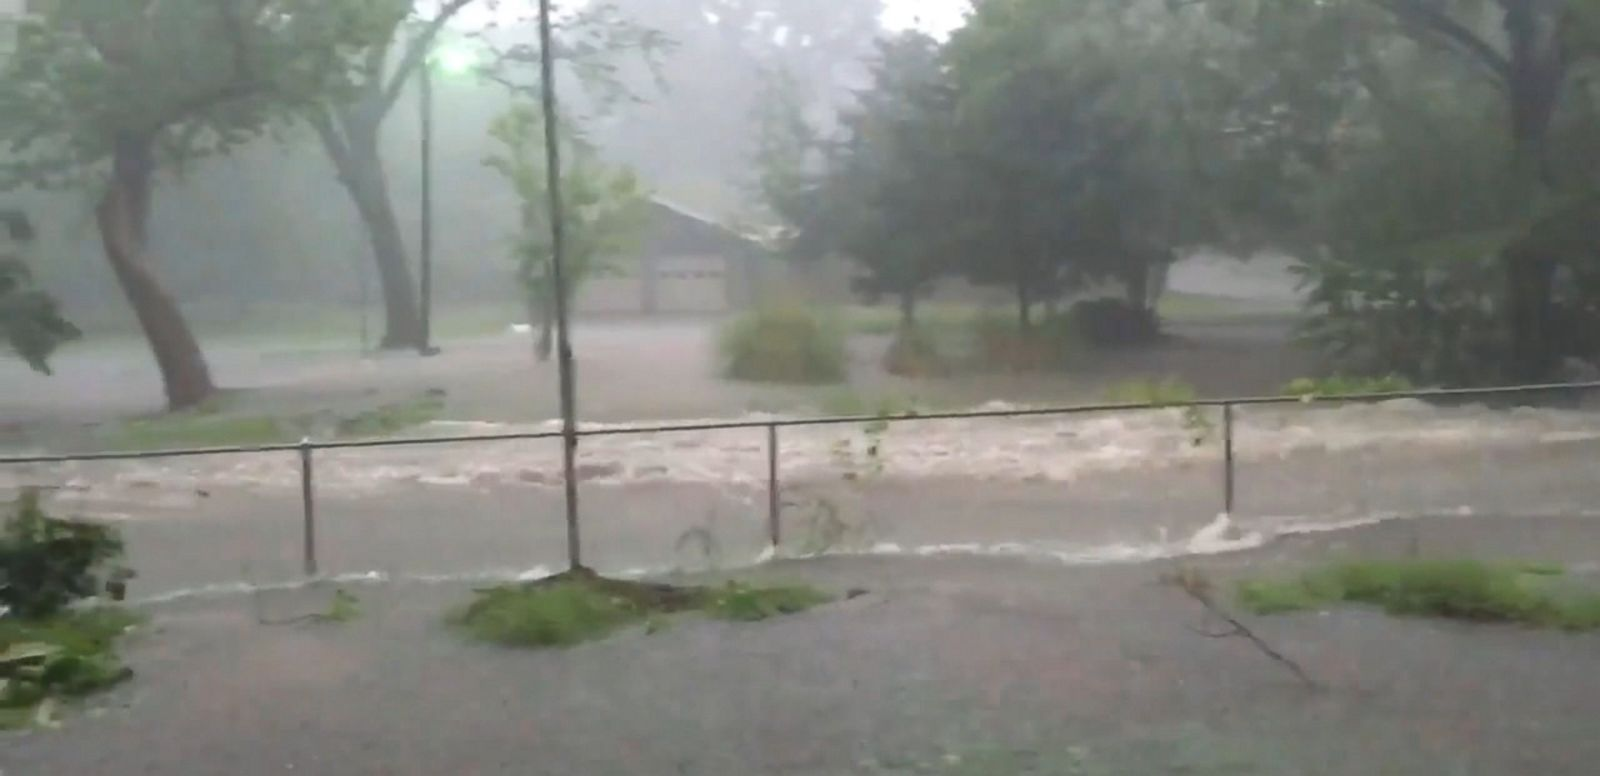 VIDEO: At least one person is dead in Southeast Texas after heavy rains and extreme flooding barreled through the area, officials said.